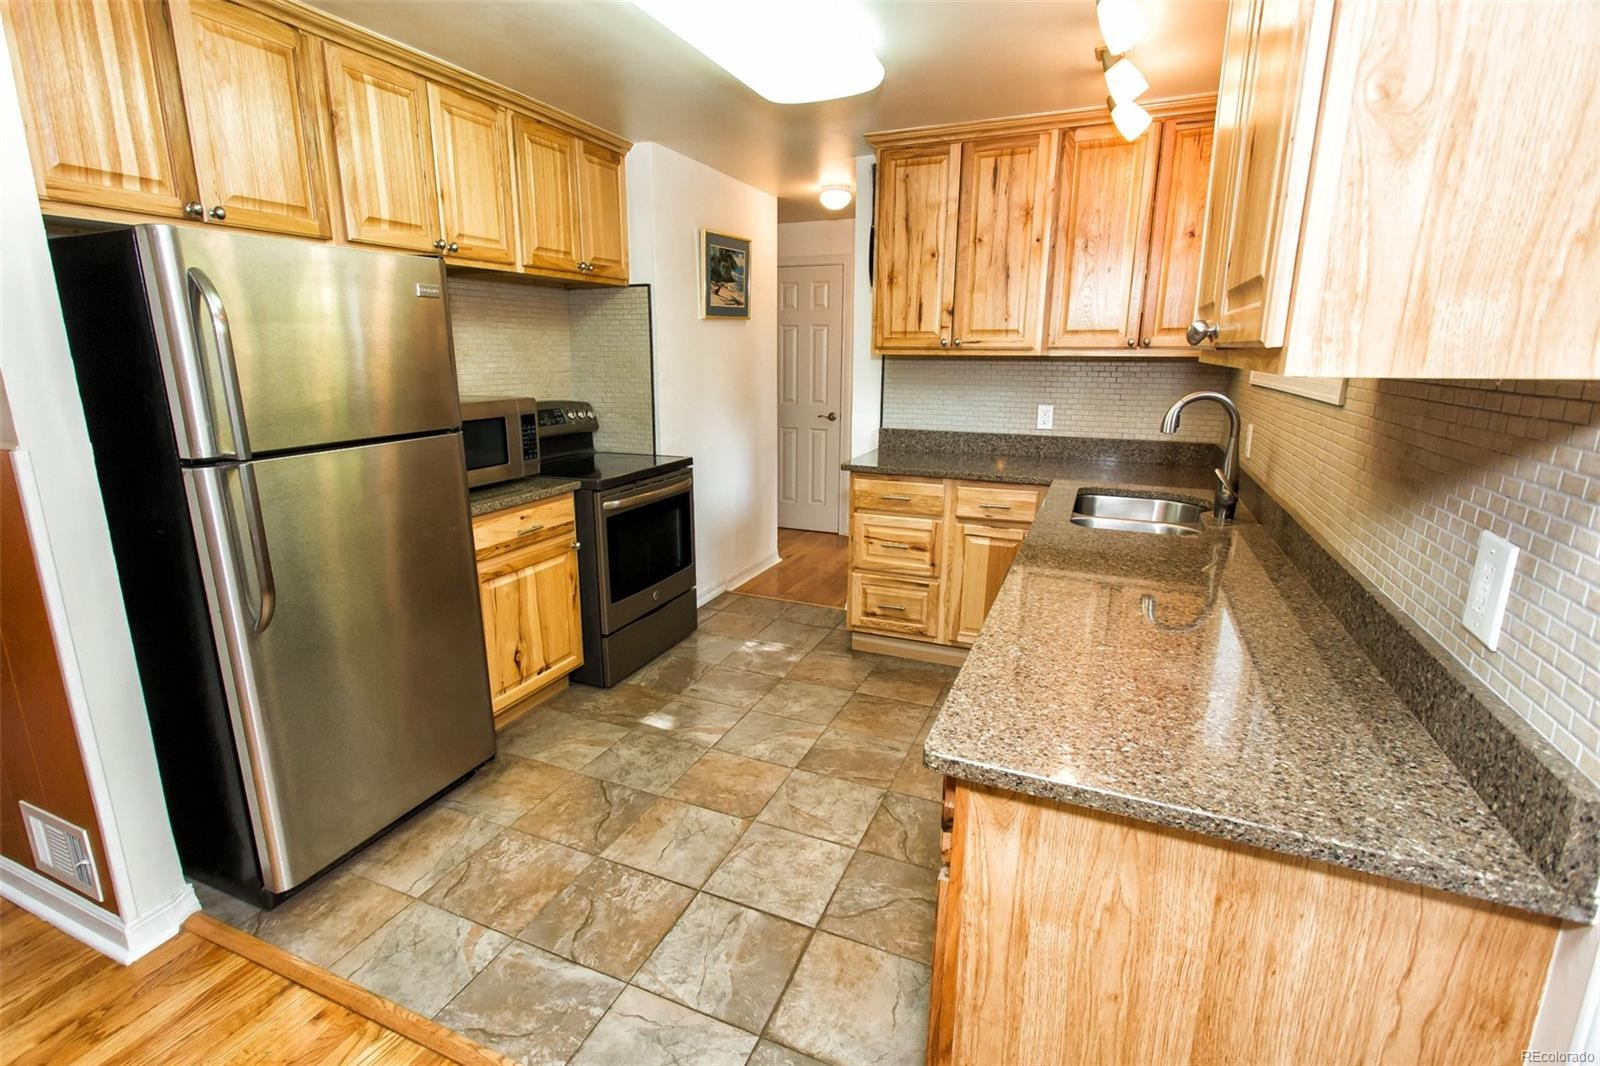 MLS# 1591889 - 12 - 10120 W 8th Place, Lakewood, CO 80215